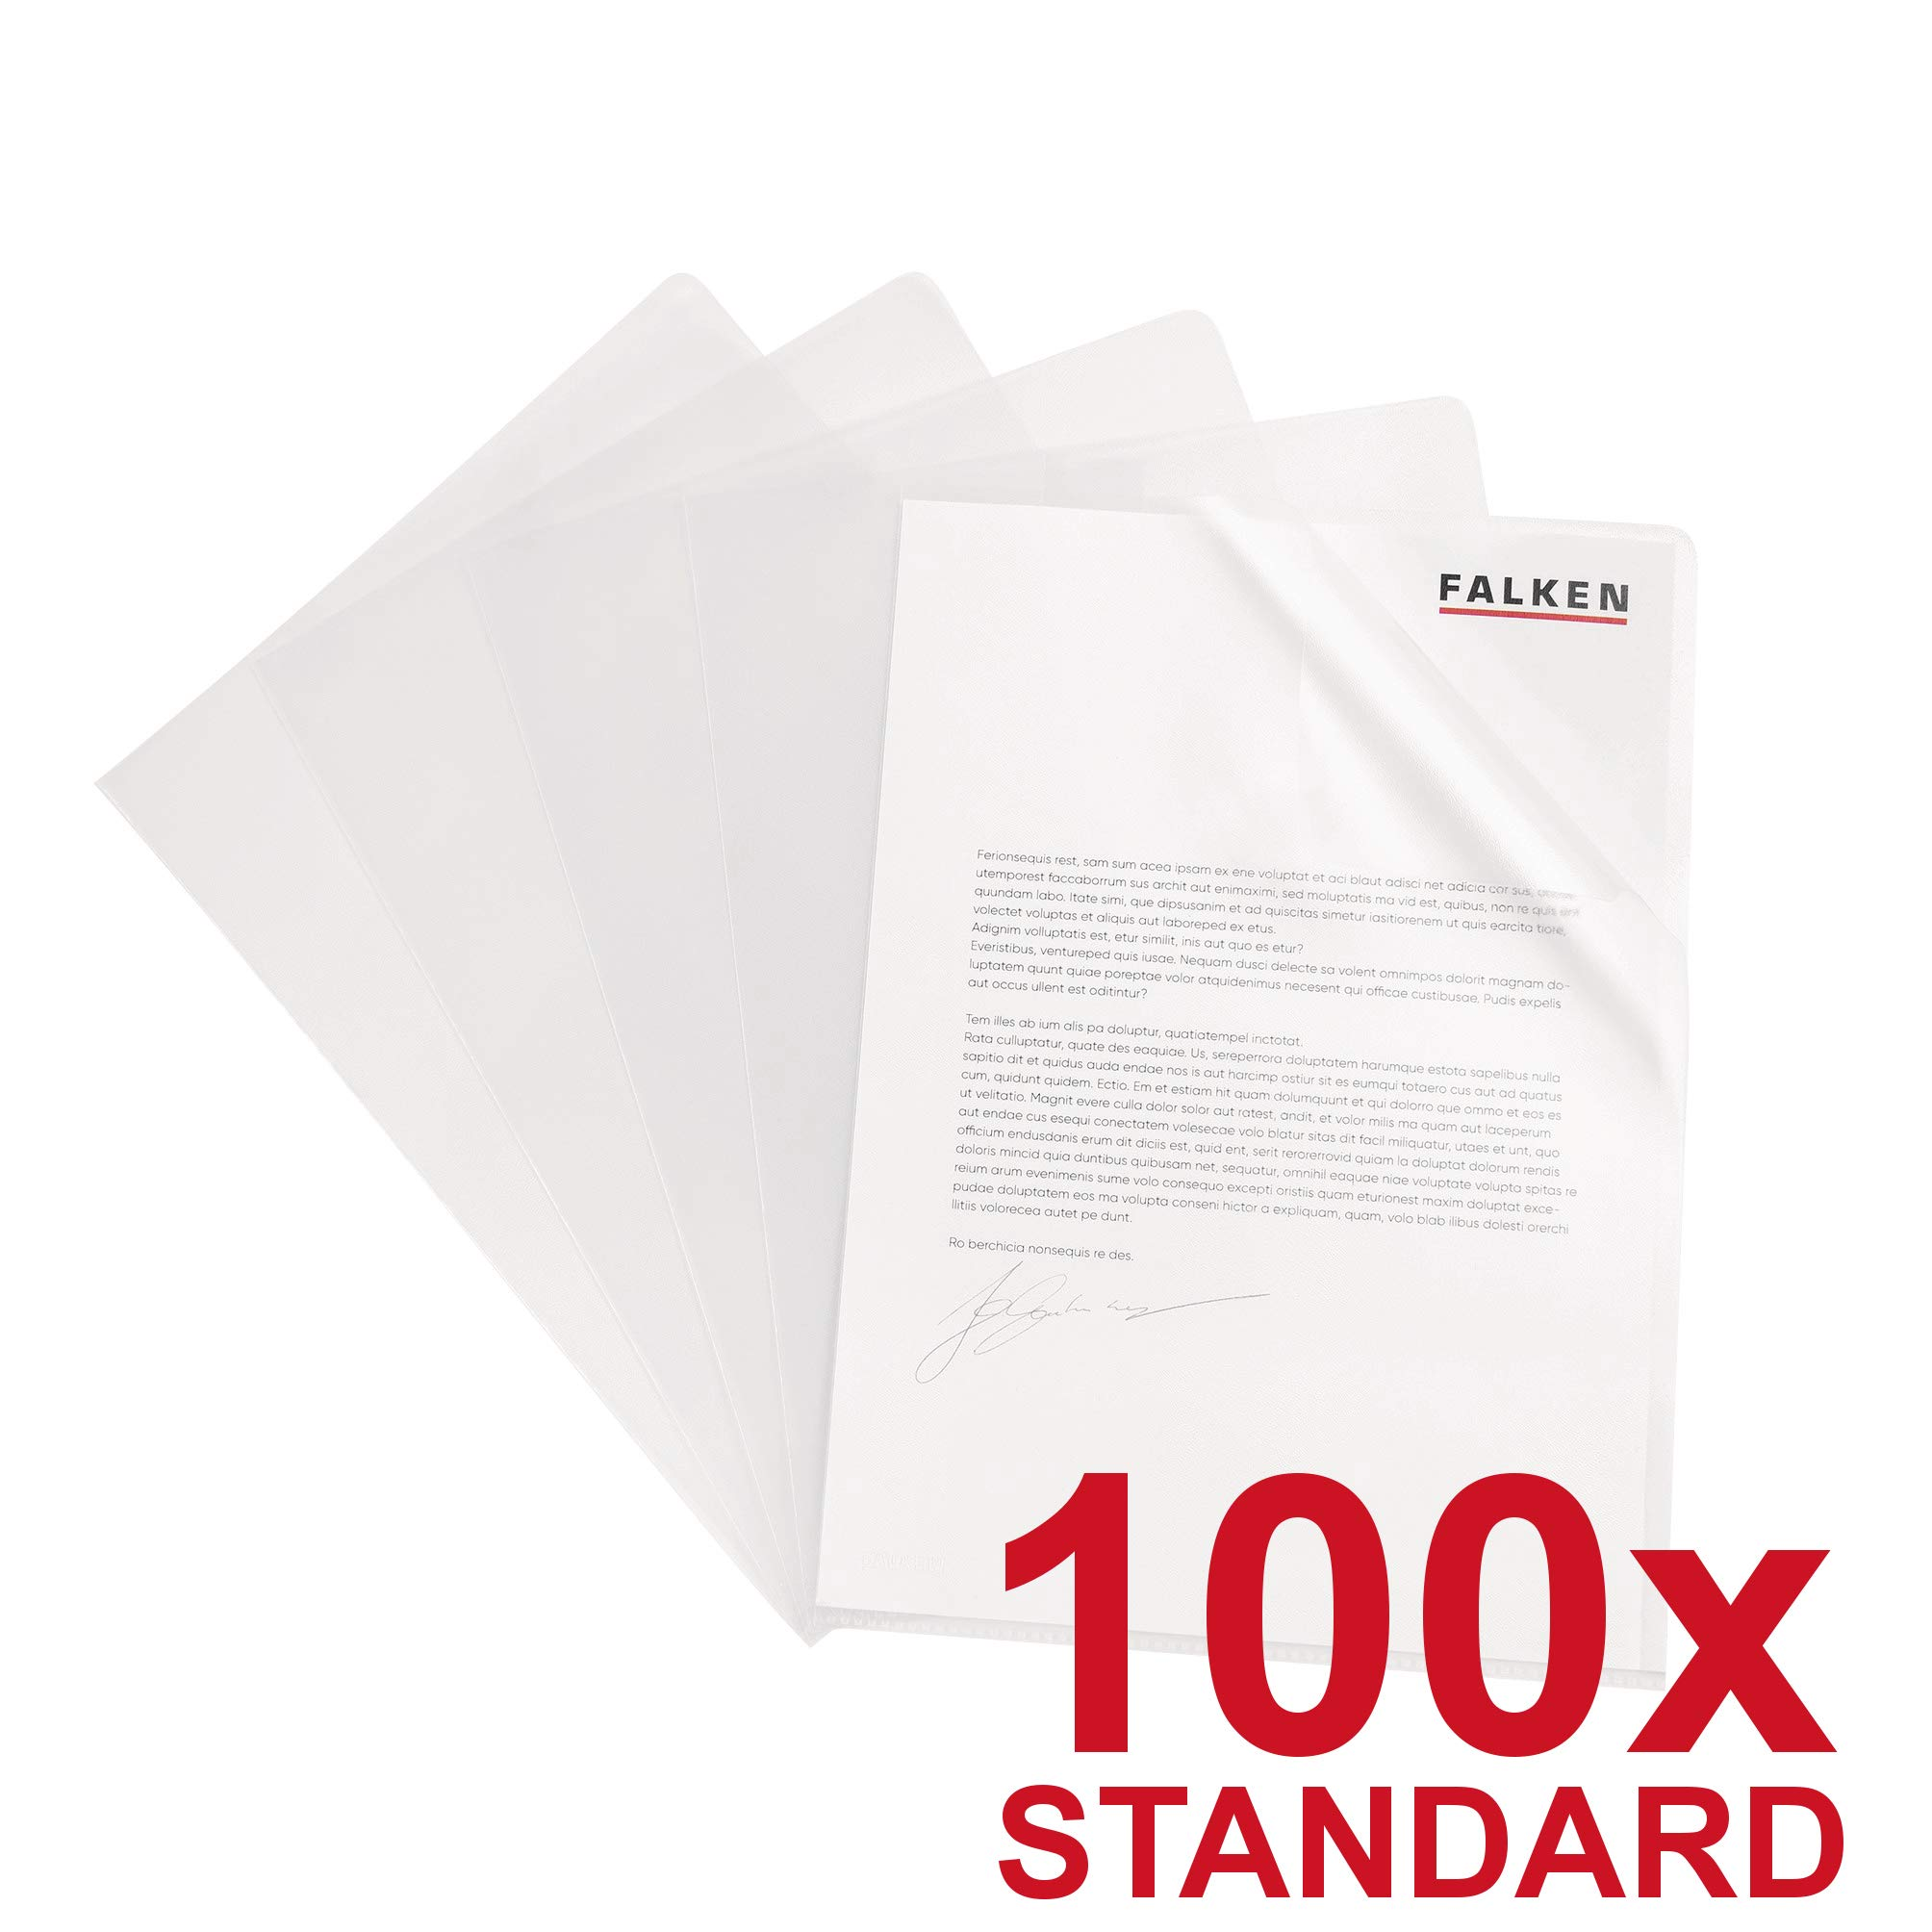 Falken Document Covers, Transparent Standard - Crystal-Clear (100 Items) DIN A4 Transparent by FALKEN